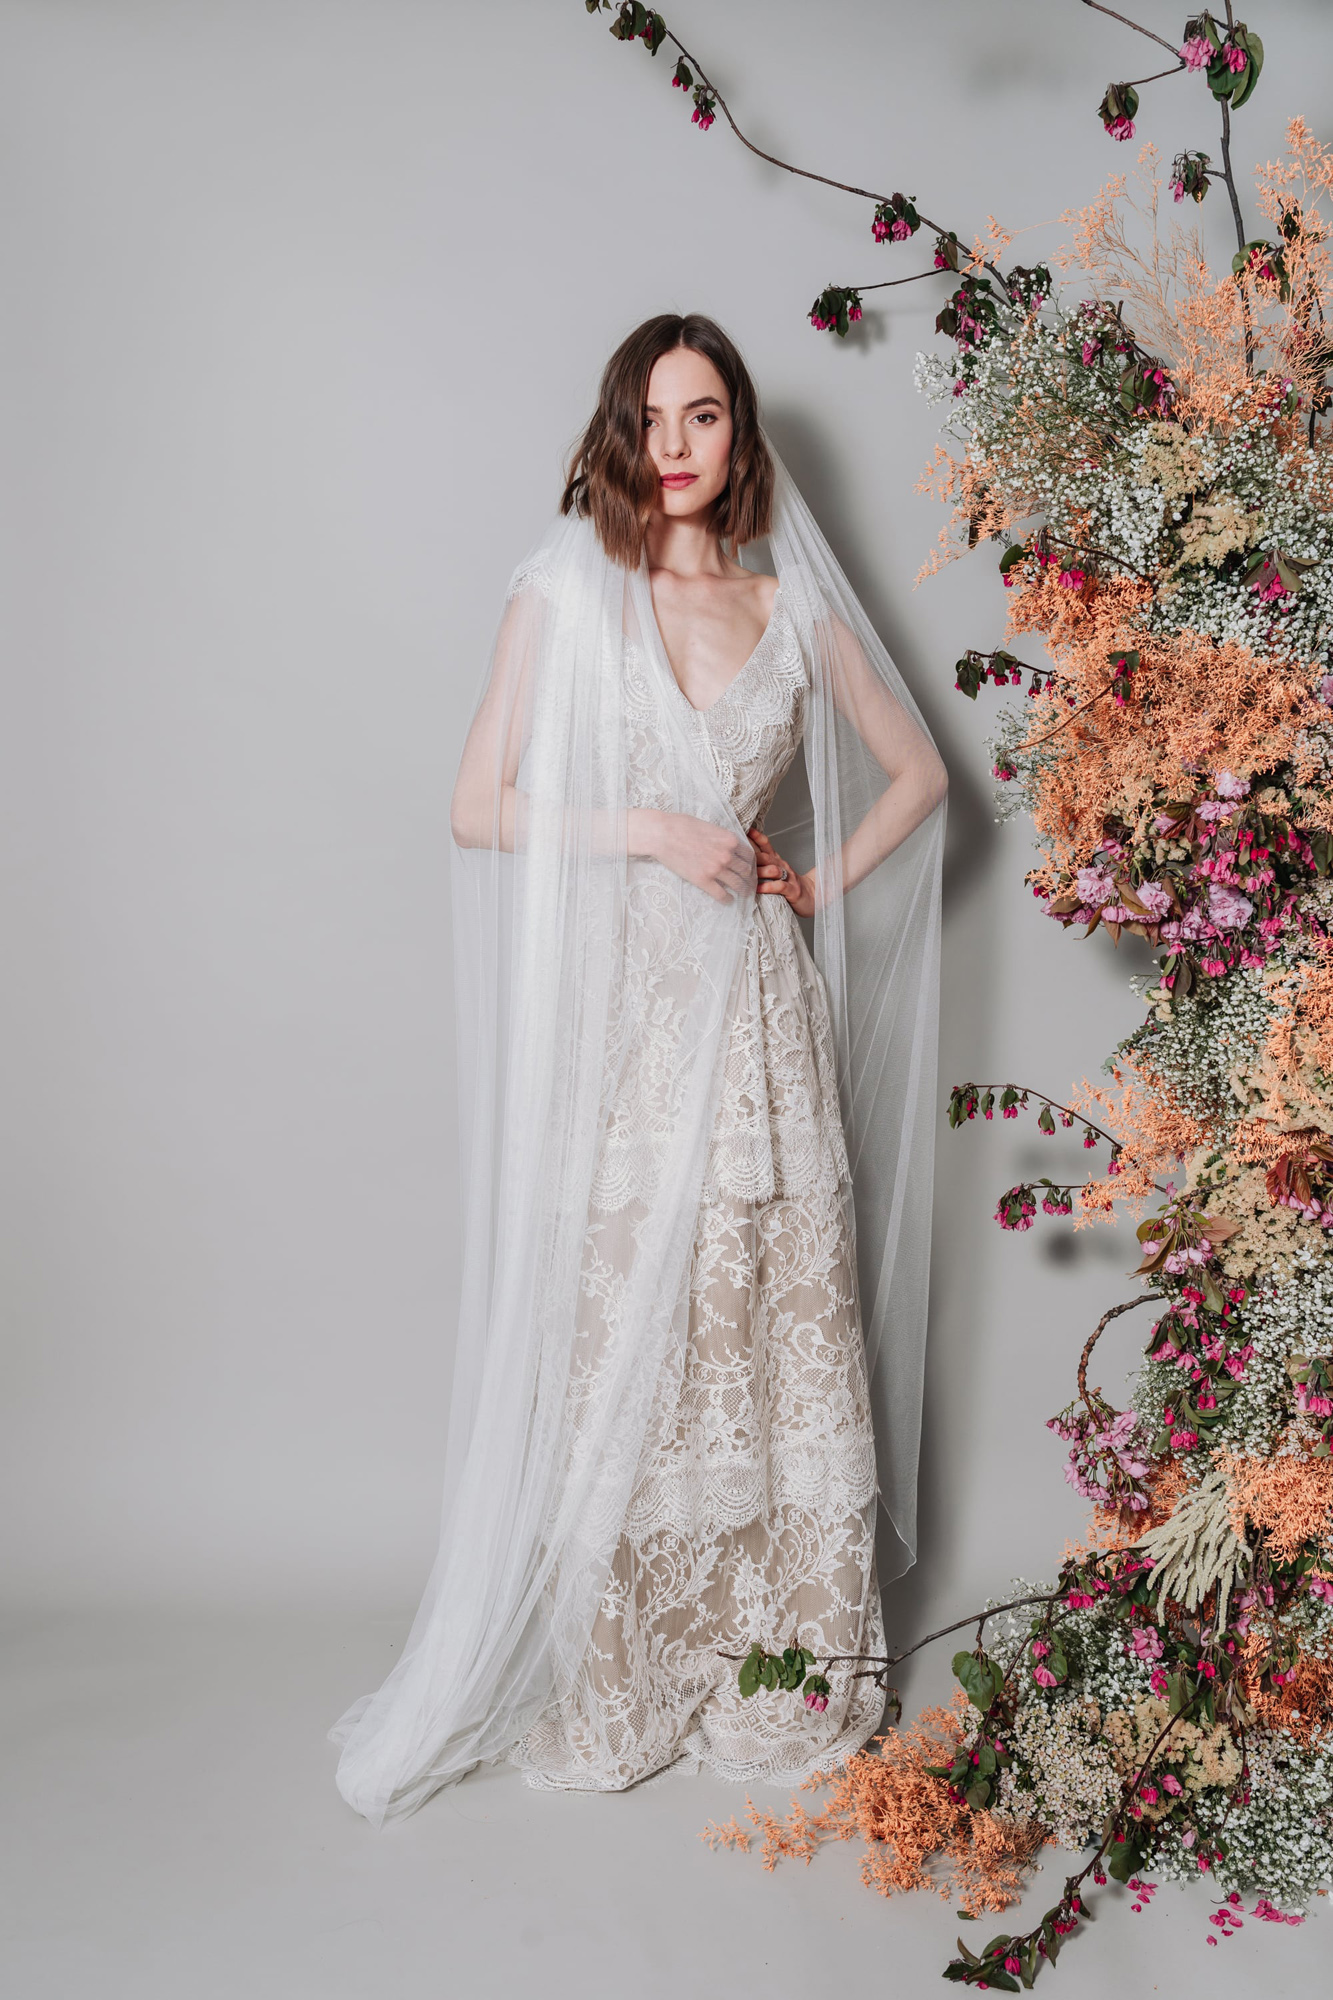 Kate-Beaumont-Sheffield-Picot-Edge-Silky-Tulle-Ethereal-Veil-11.jpg